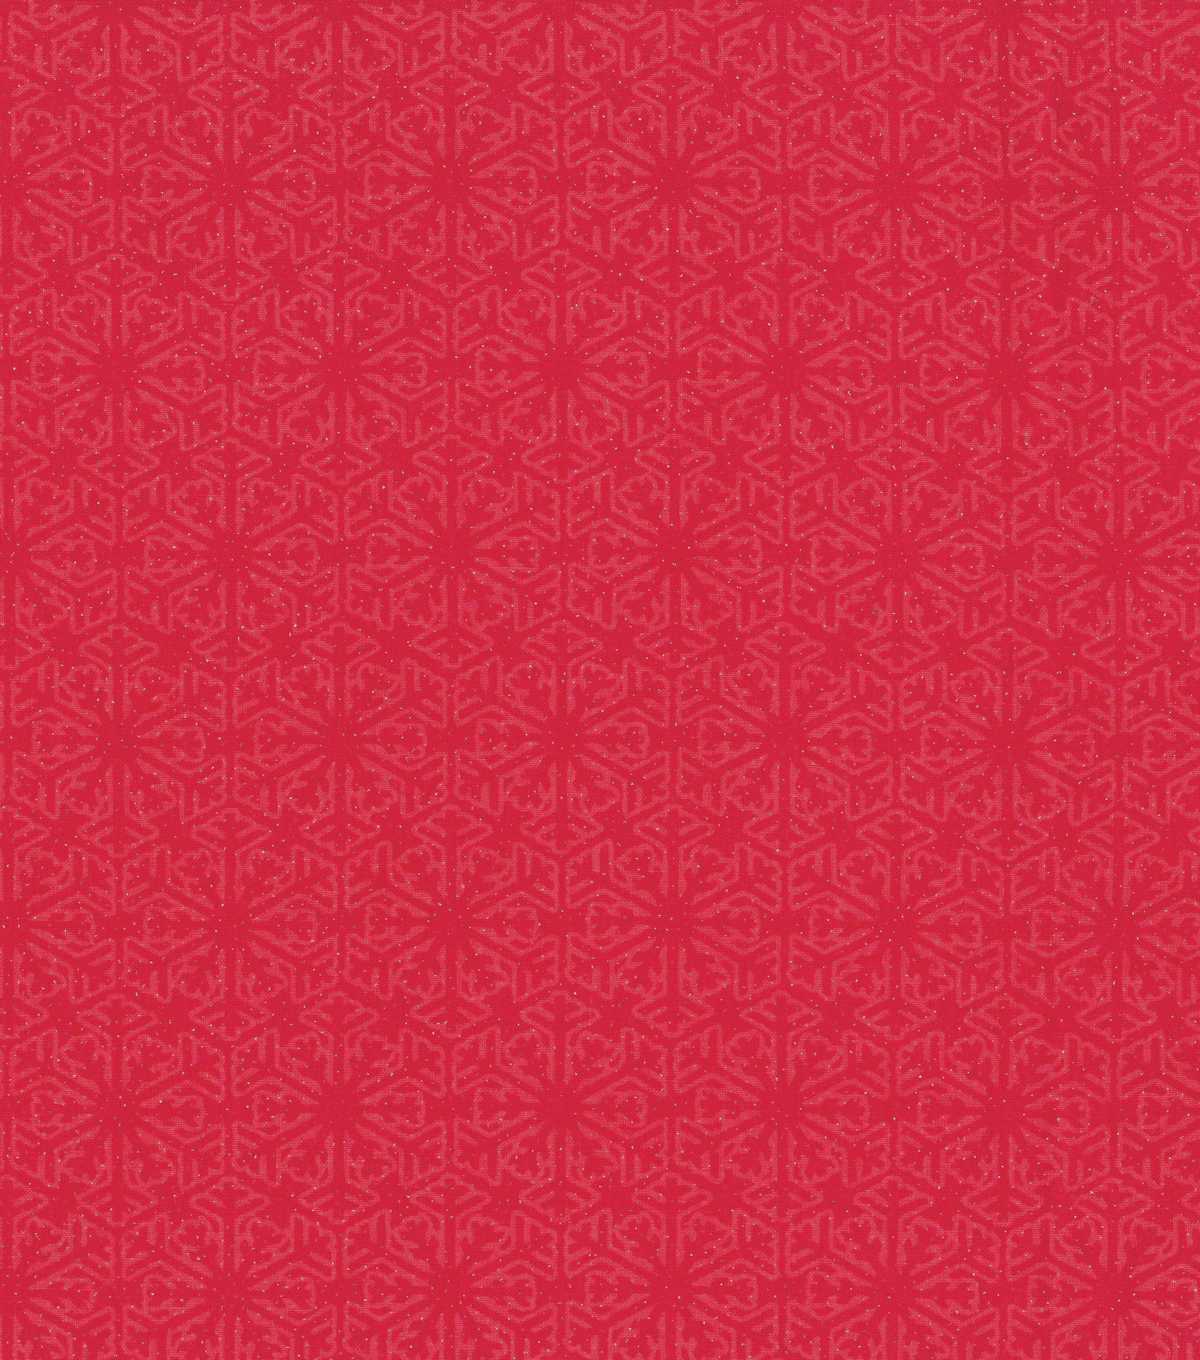 Keepsake Calico Holiday Cotton Fabric 43\u0022-Red Flakes with Glitter